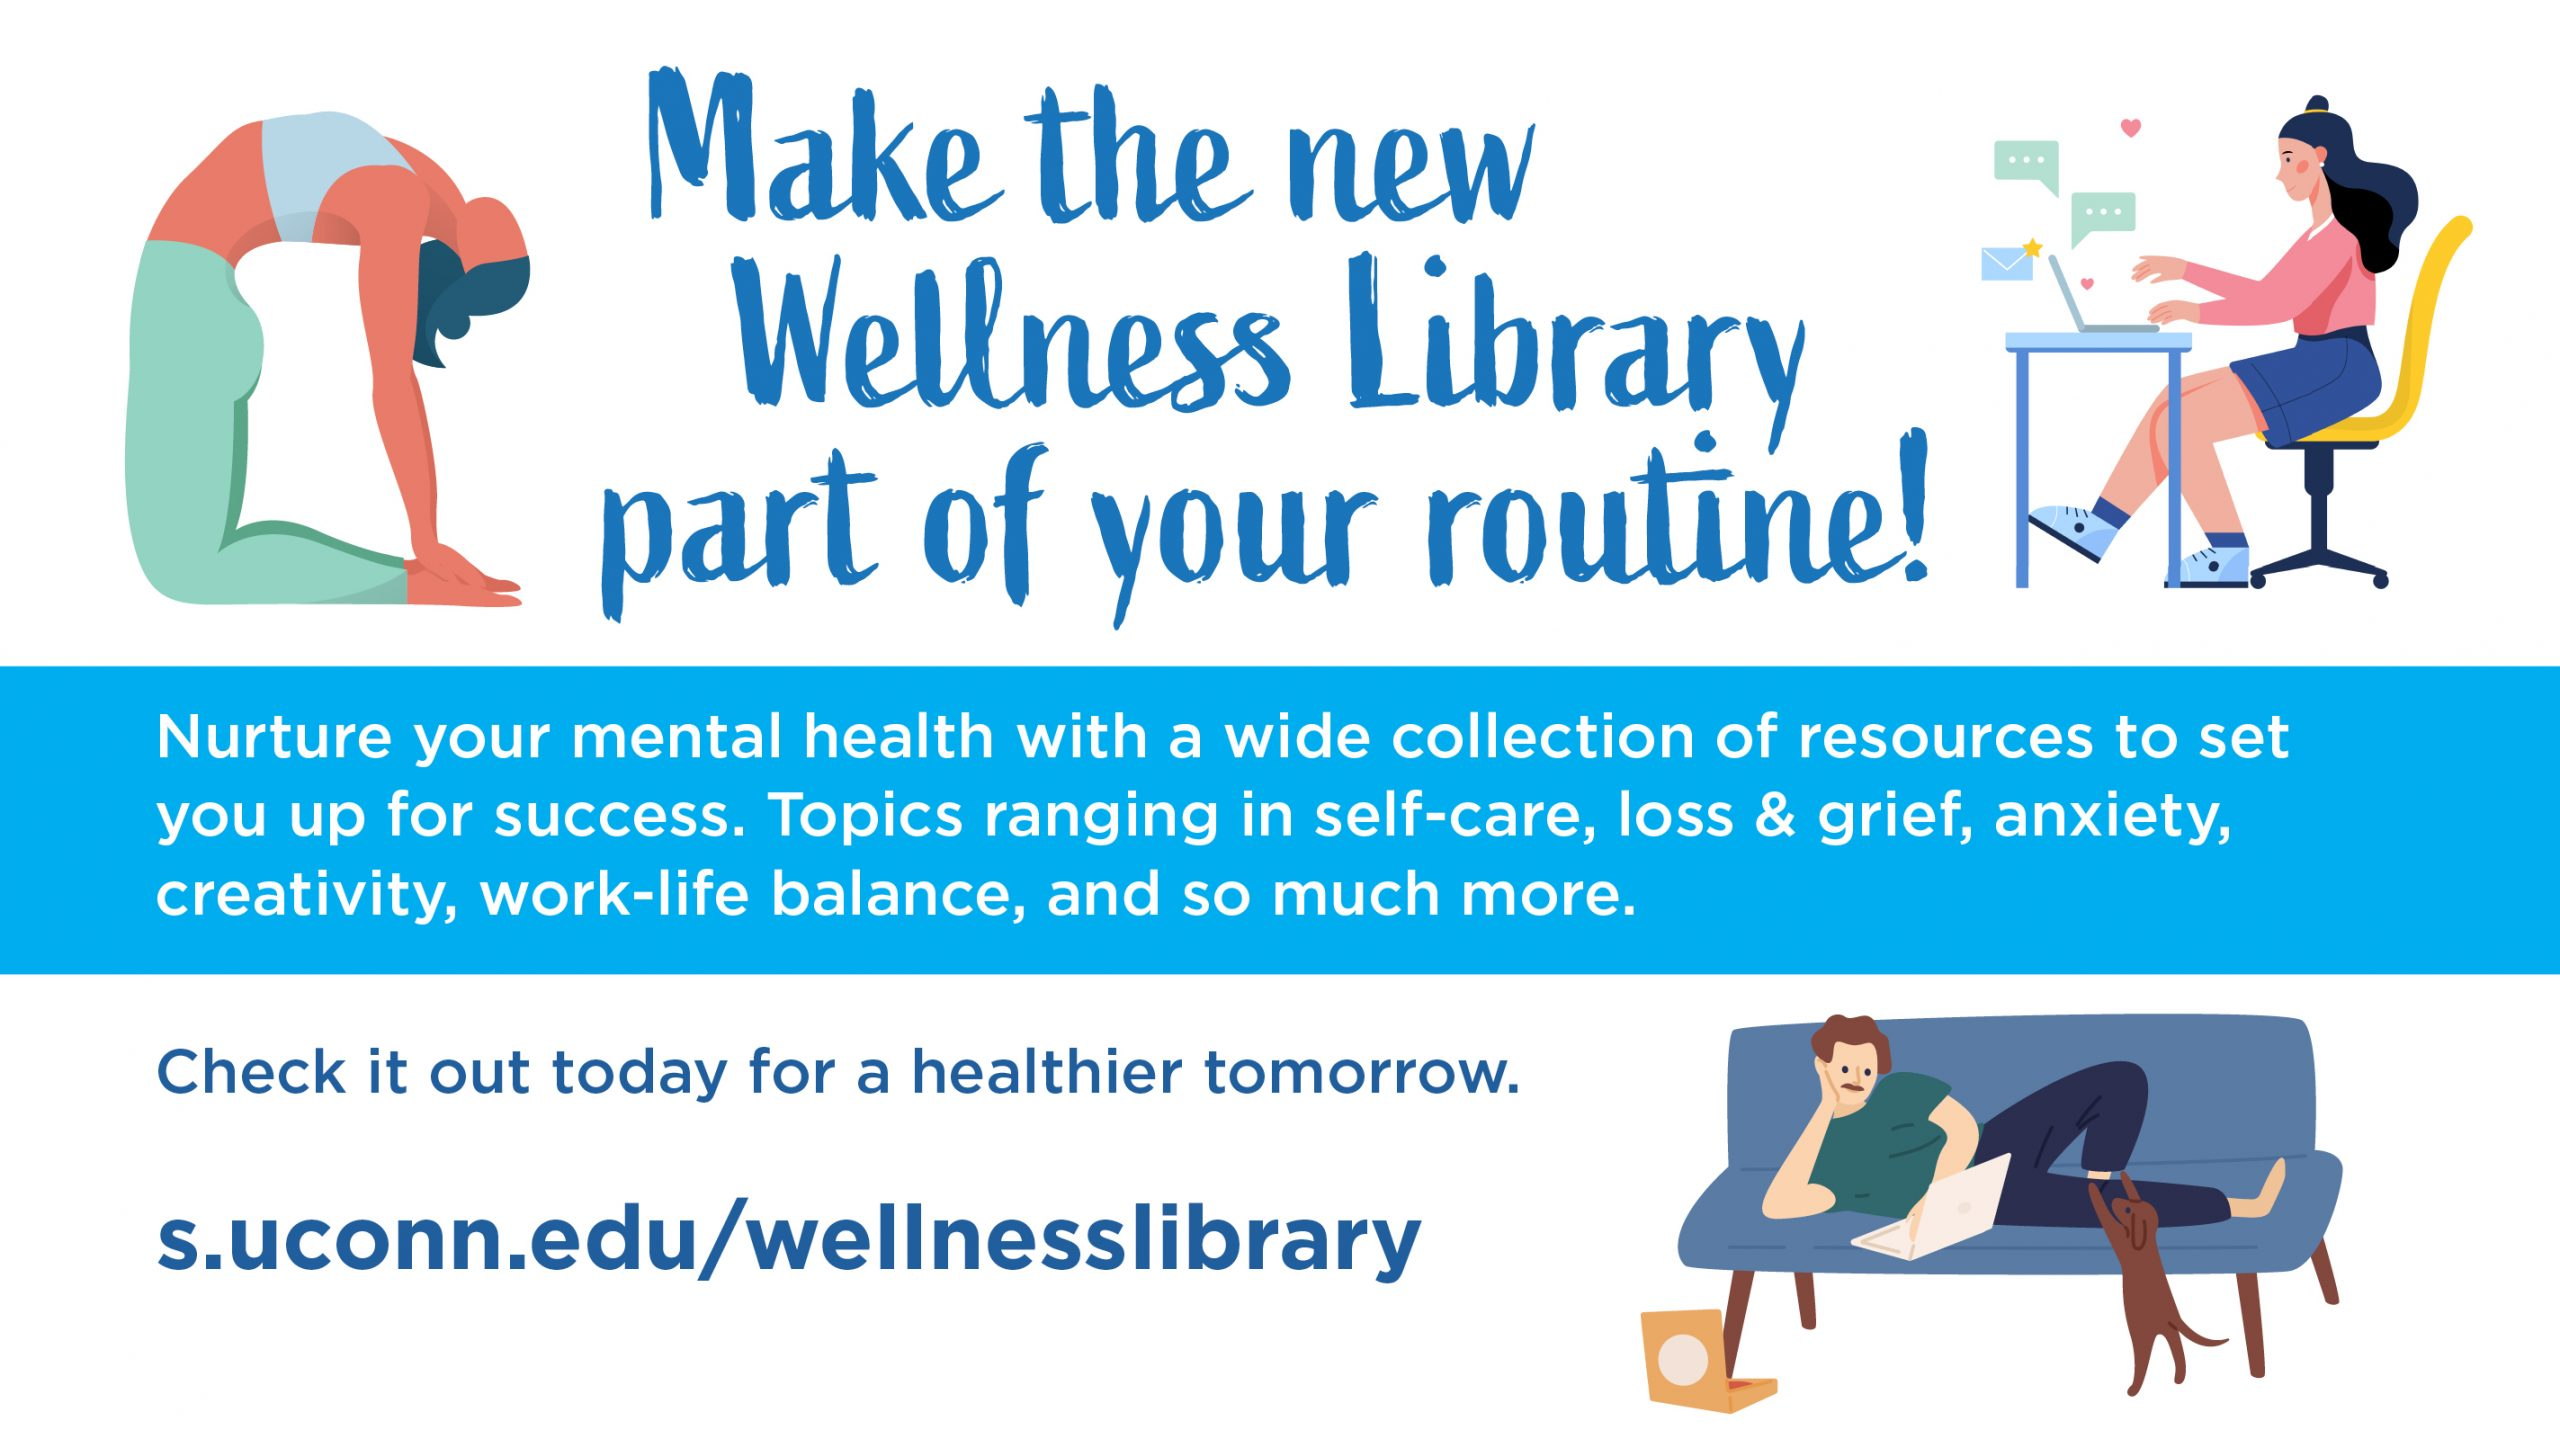 Make the new Wellness Library part of your routine! Nurture your mental health with a wide collection of resources to set you up for success. Topics ranging in self-care, loss & grief, anxiety, creativity, work-life balance, and so much more. Check it out today for a healthier tomorrow. s.uconn.edu/wellnesslibrary